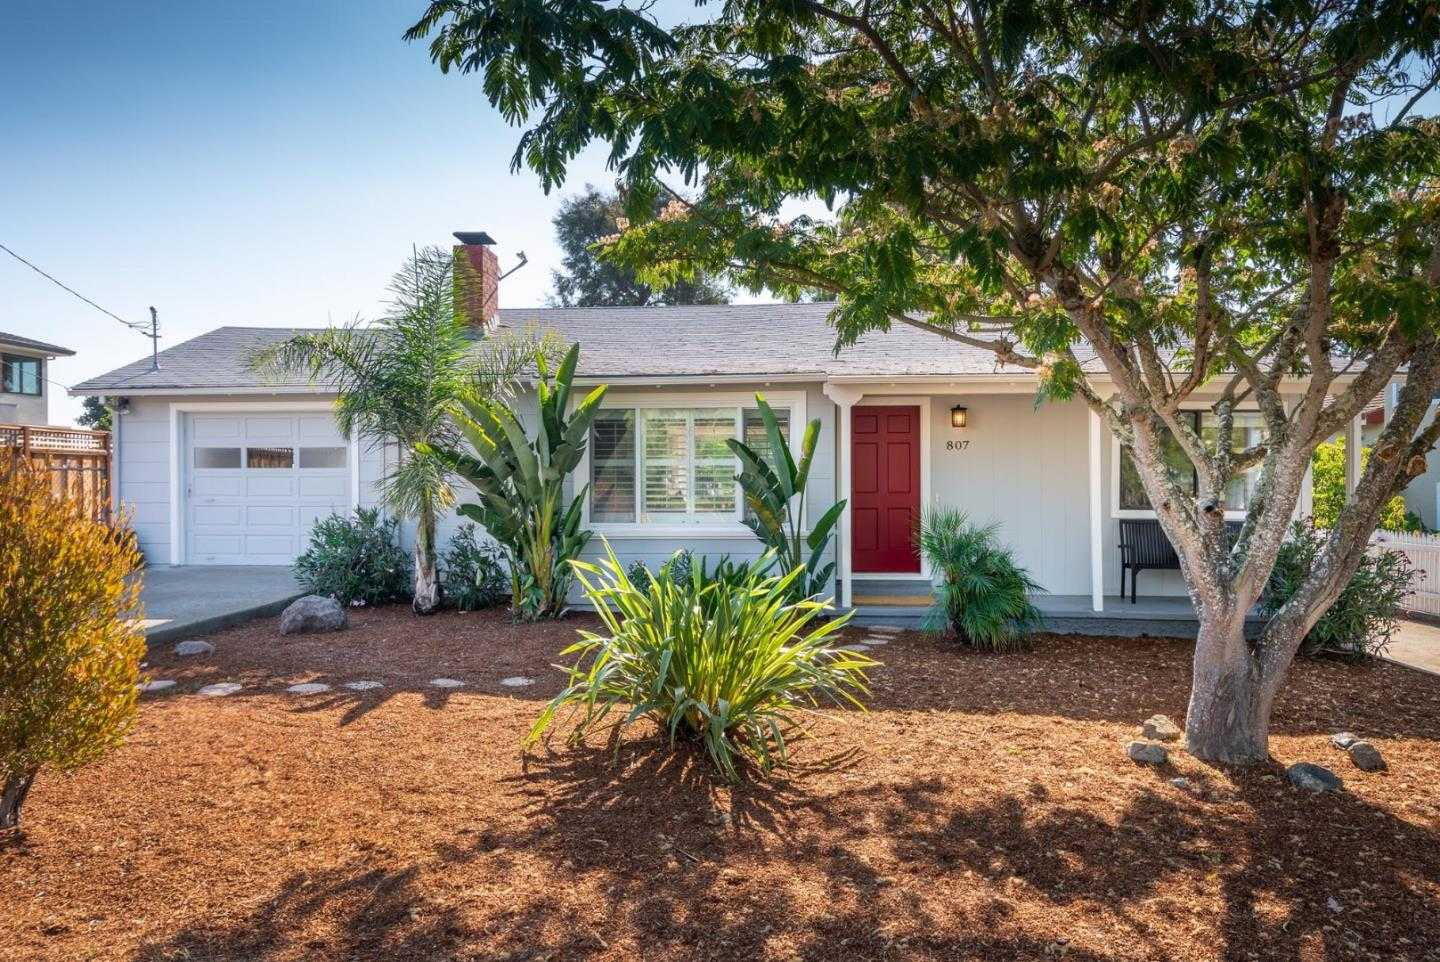 $1,599,000 - 2Br/1Ba -  for Sale in Redwood City